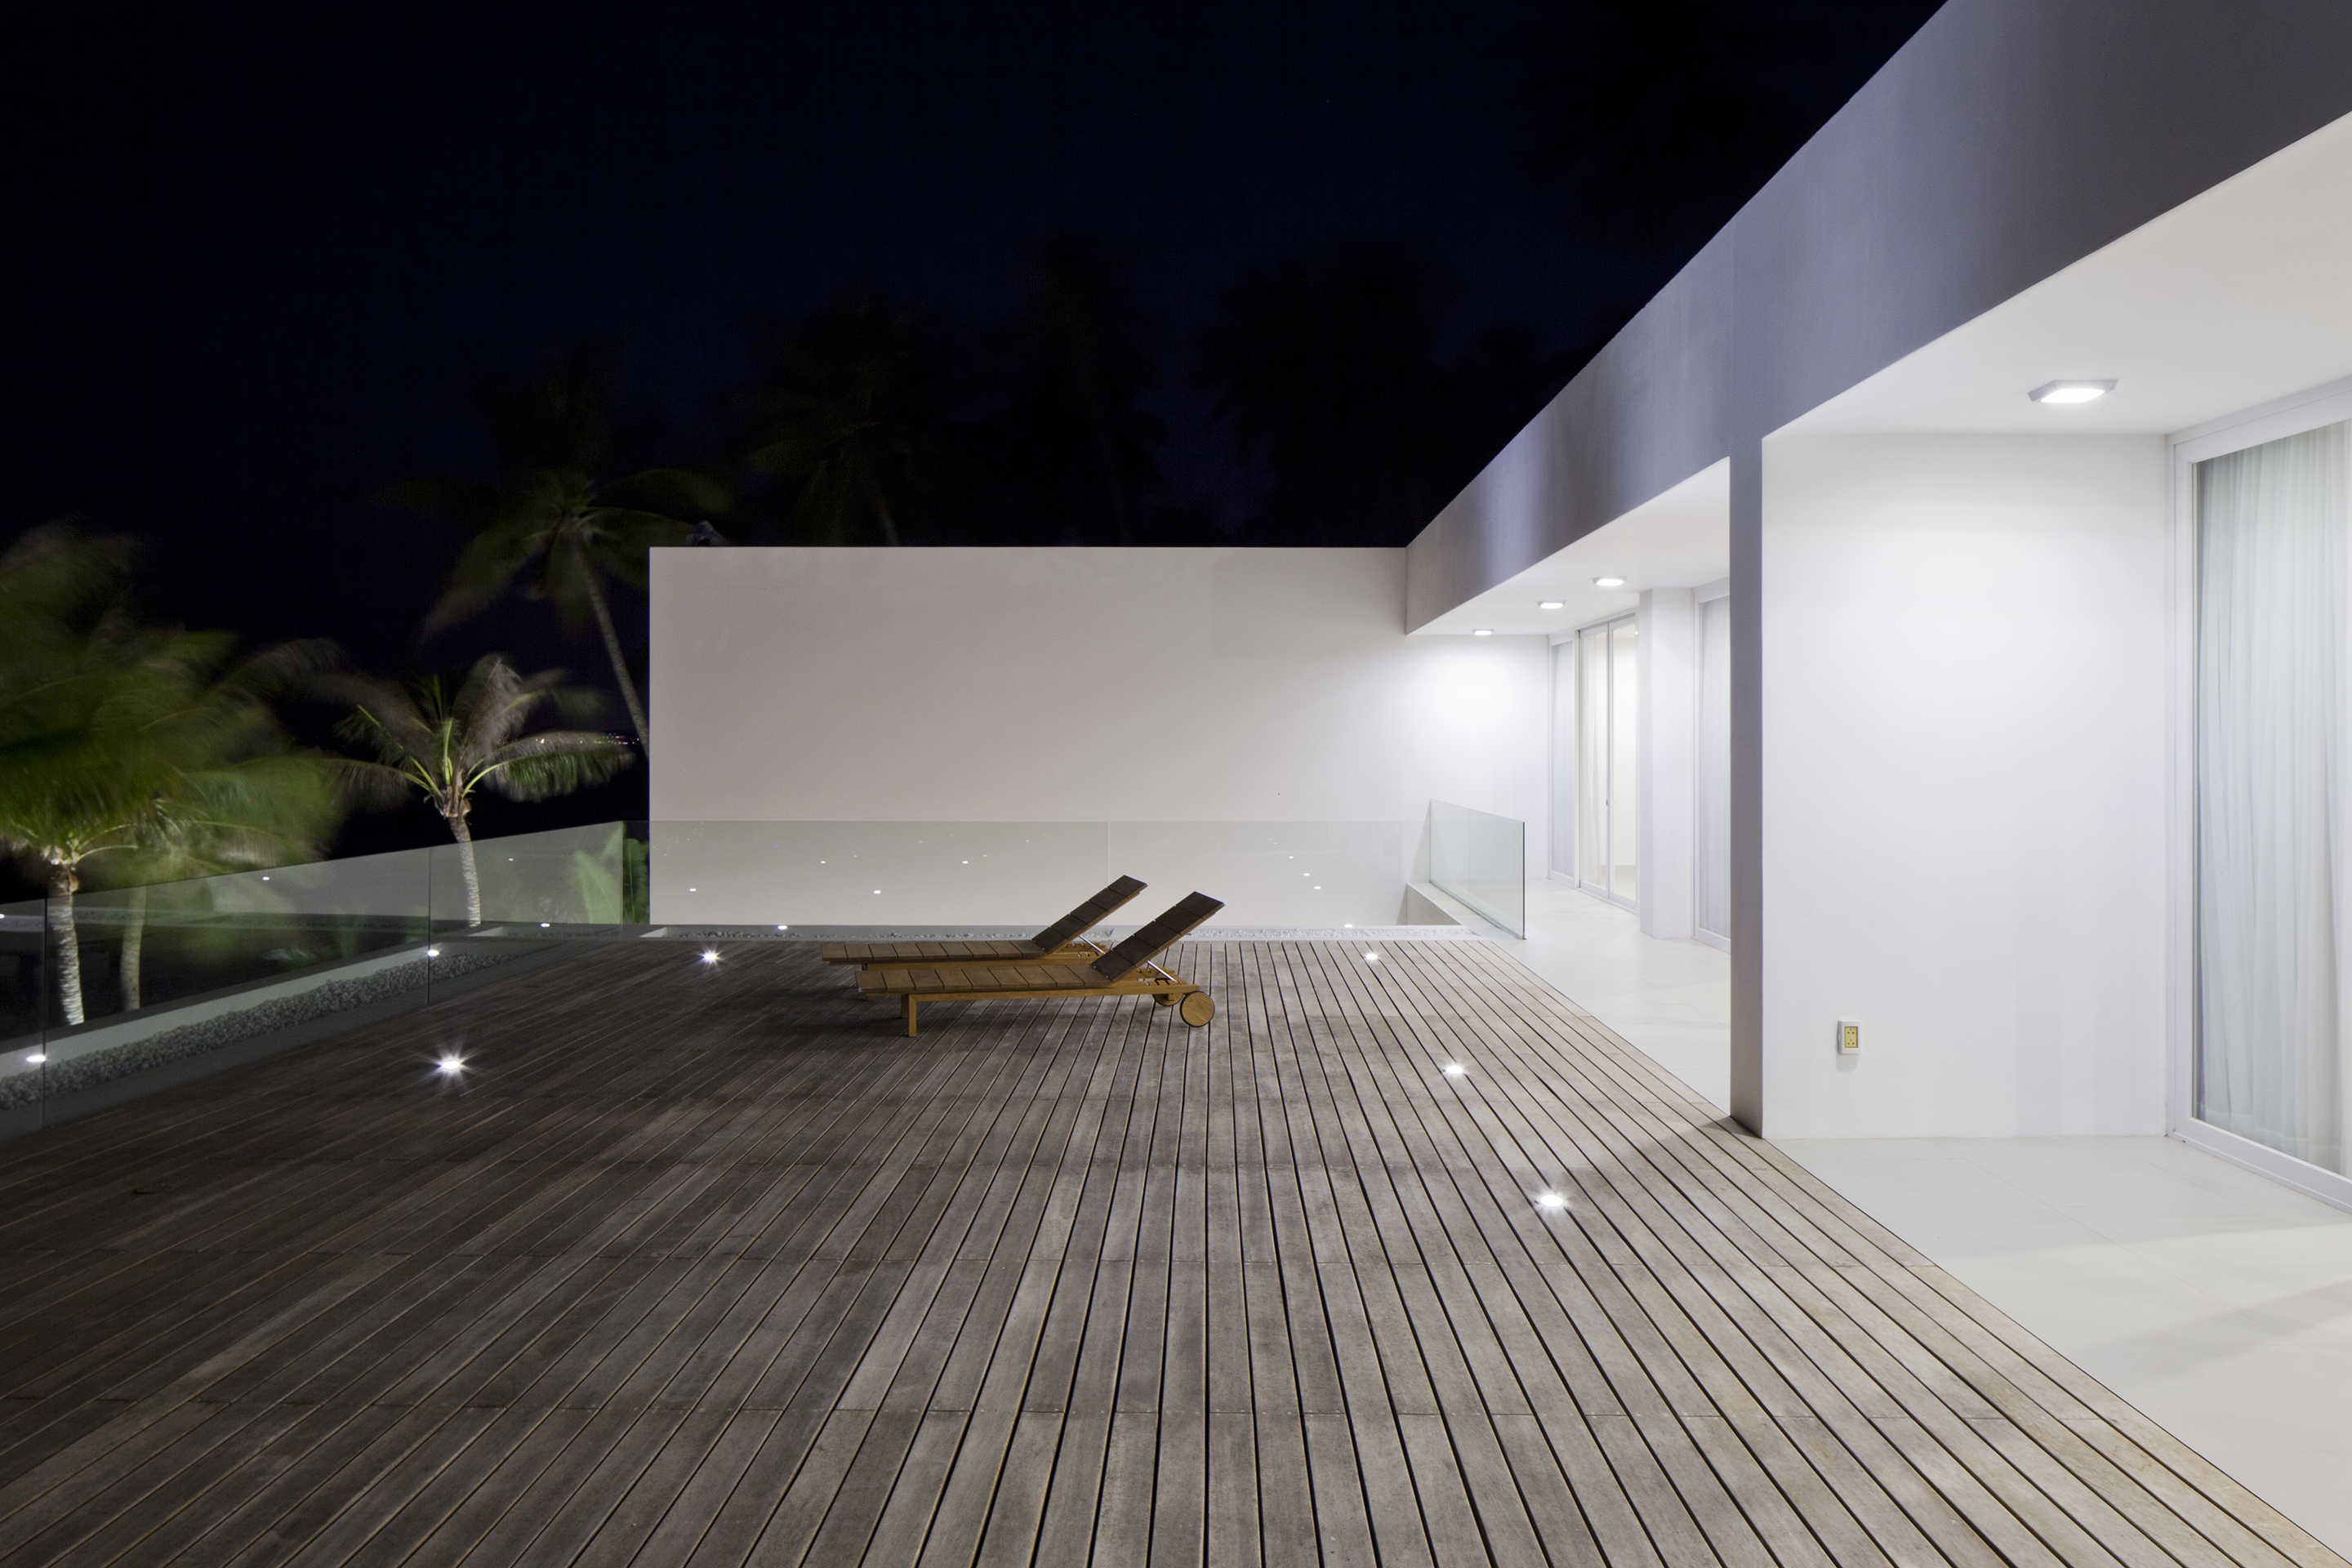 The upper level hardwood deck as seen at night, with embedded lighting in the floor and glass railings for transparent ocean views.